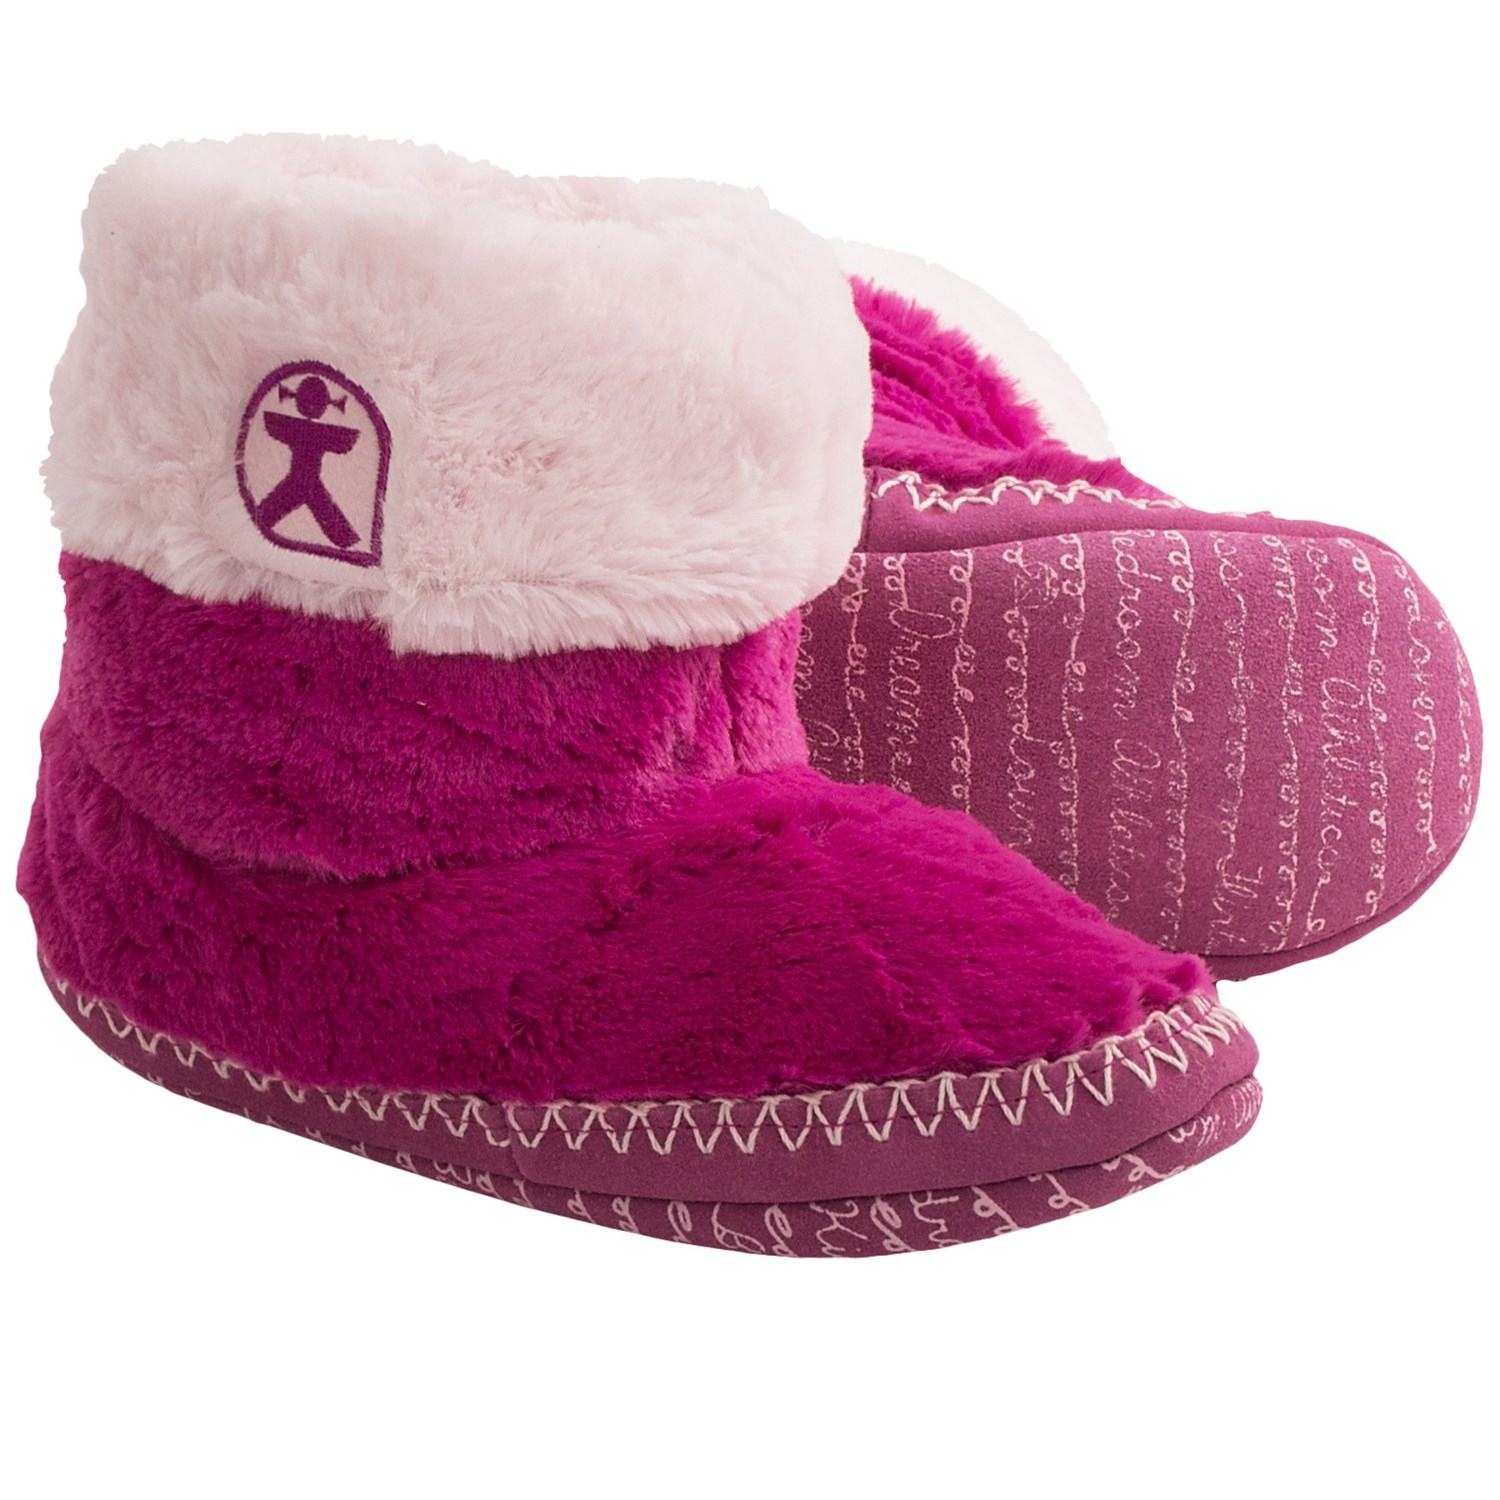 Bedroom Athletics Fern Boot Slippers For Women Save 30%